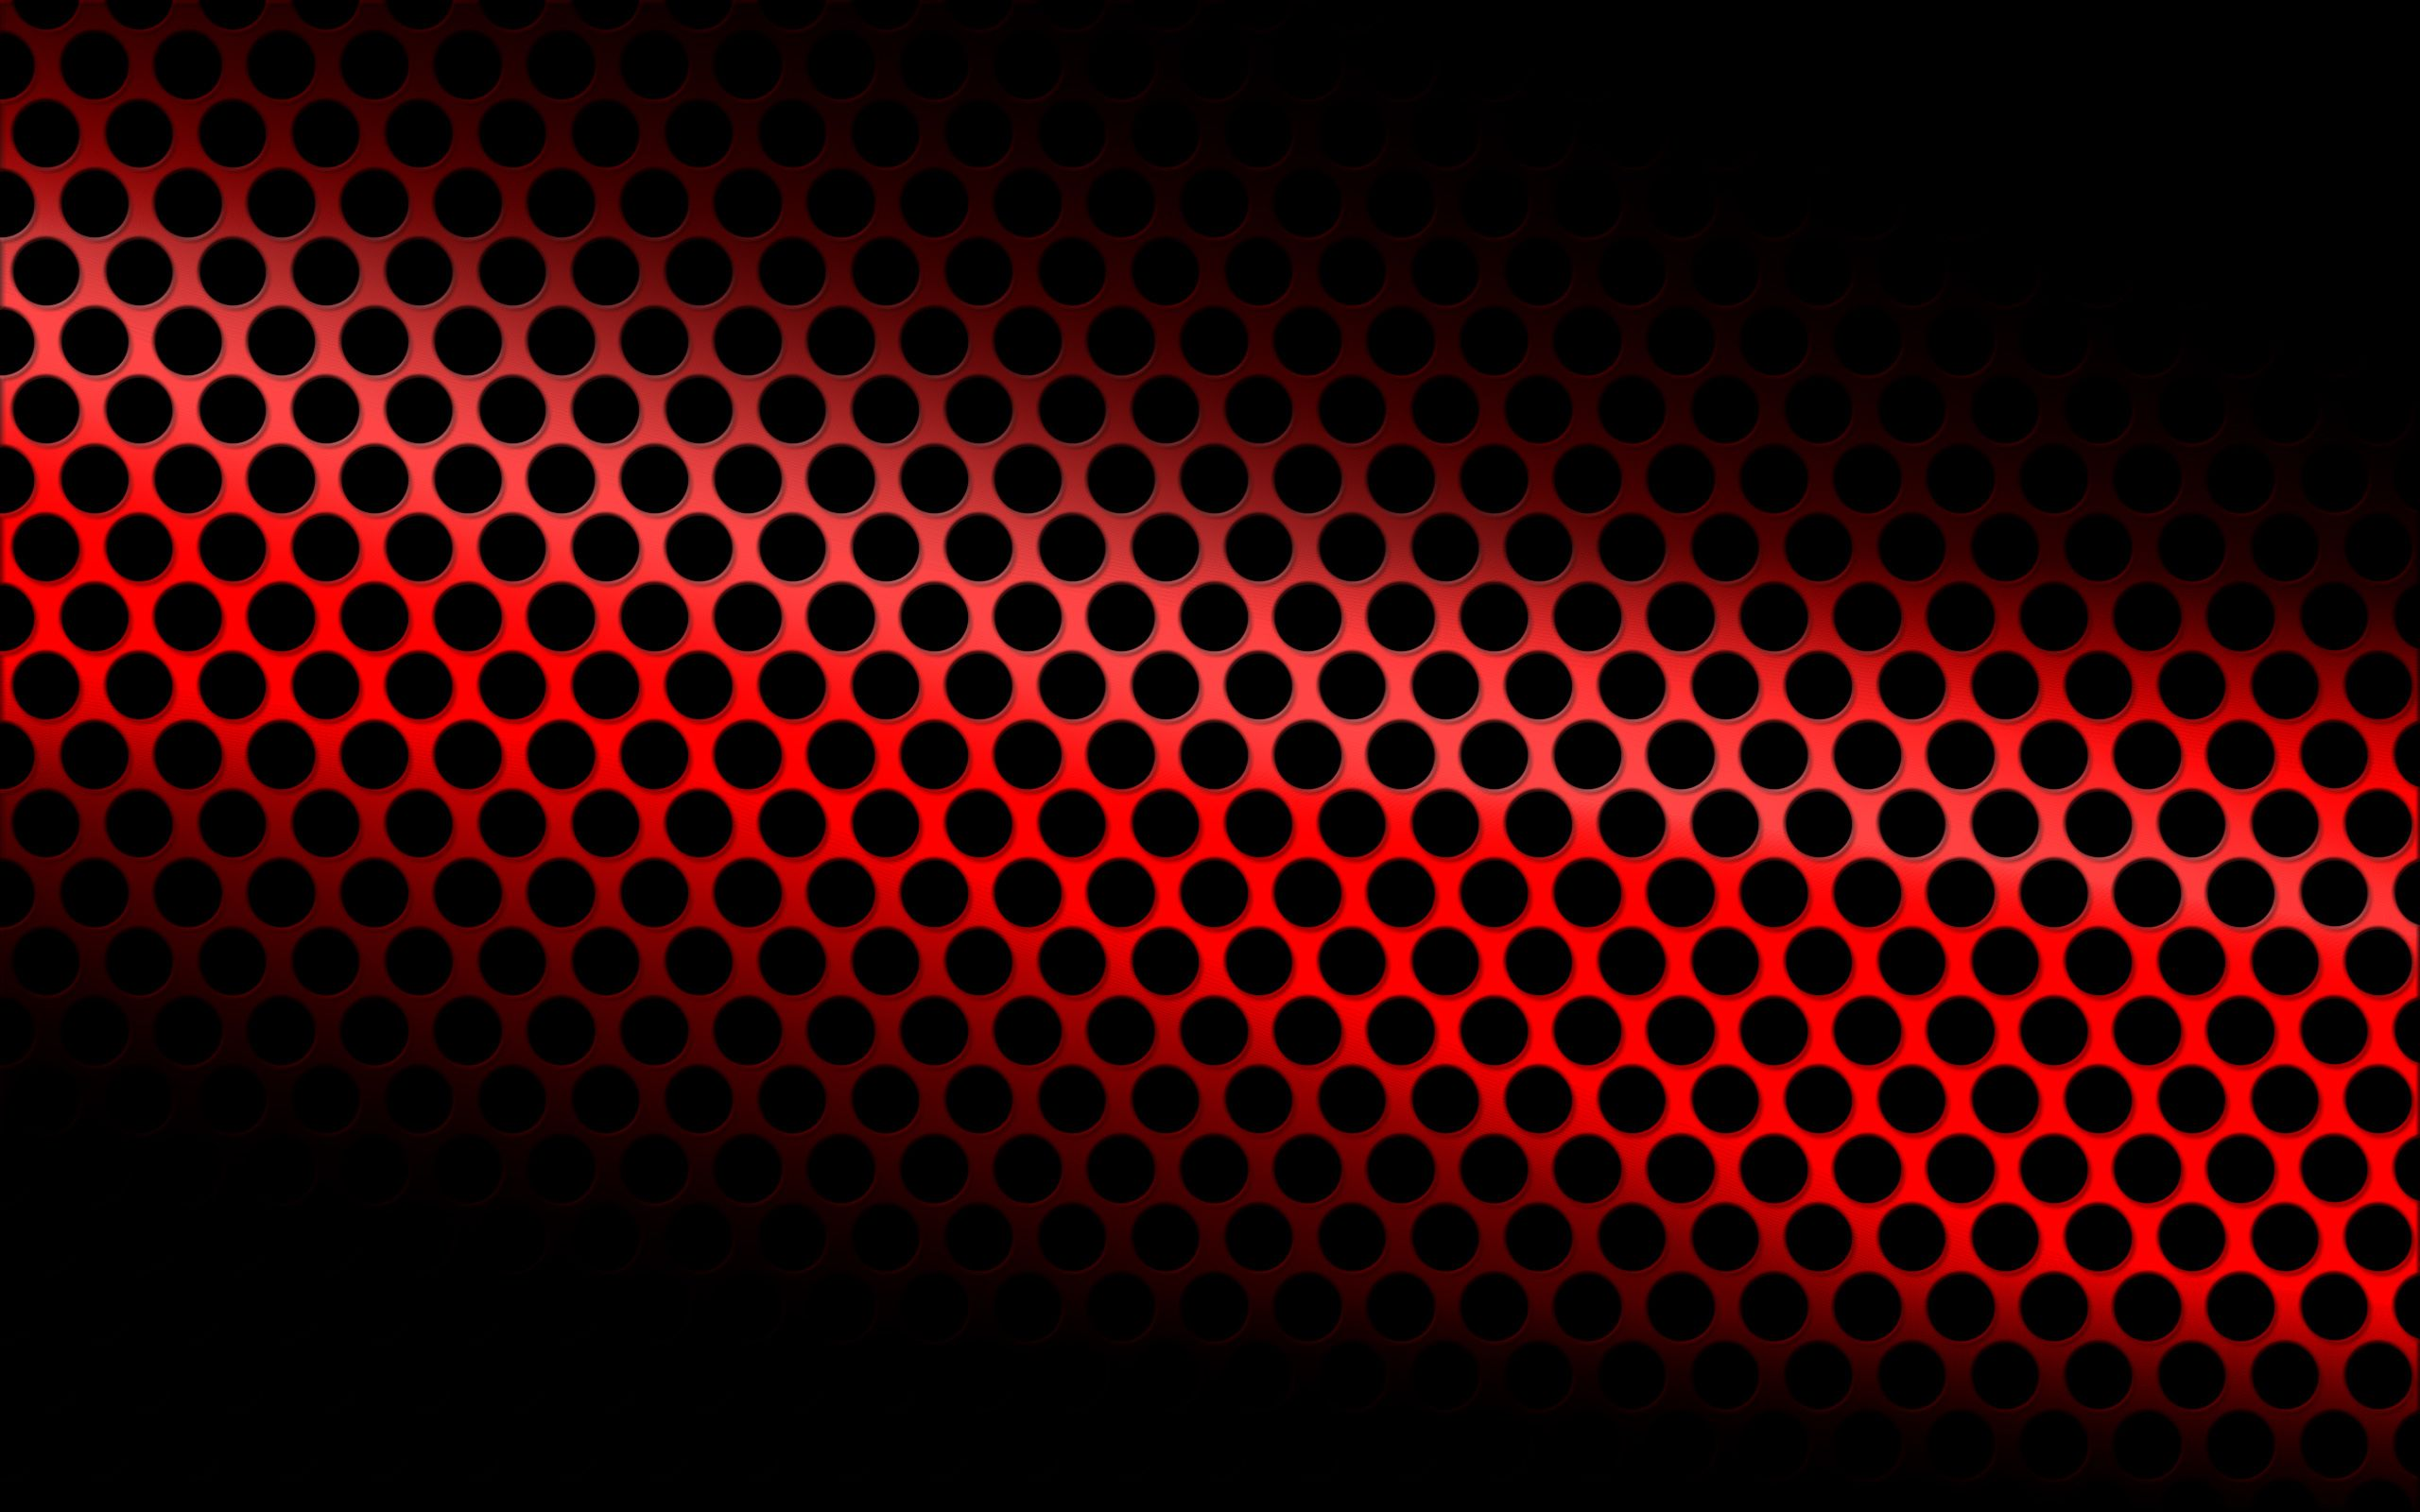 Black And Red Wallpapers Hd Hd Wallpapers Backgrounds Images